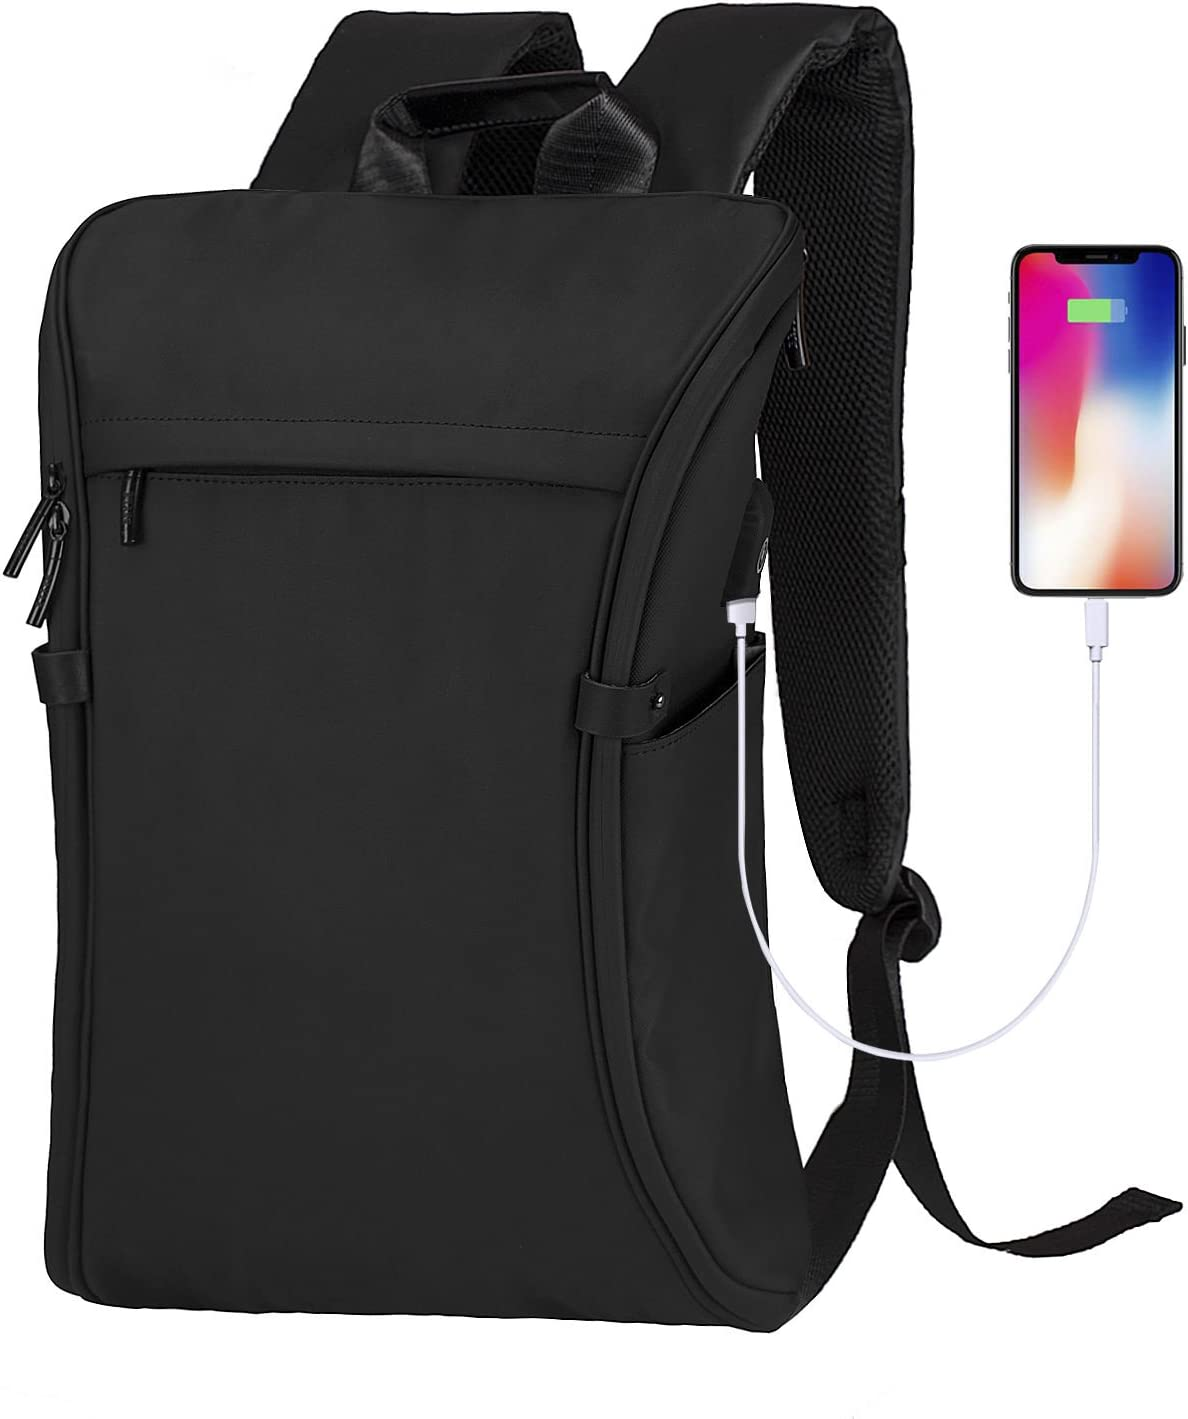 Laptop Backpack, Becky Travel College School Computer Bag with USB Charging Port, Anti-Theft Water Resistant Bookbag for Men & Women Fits 15.6 Inch Notebook, Black